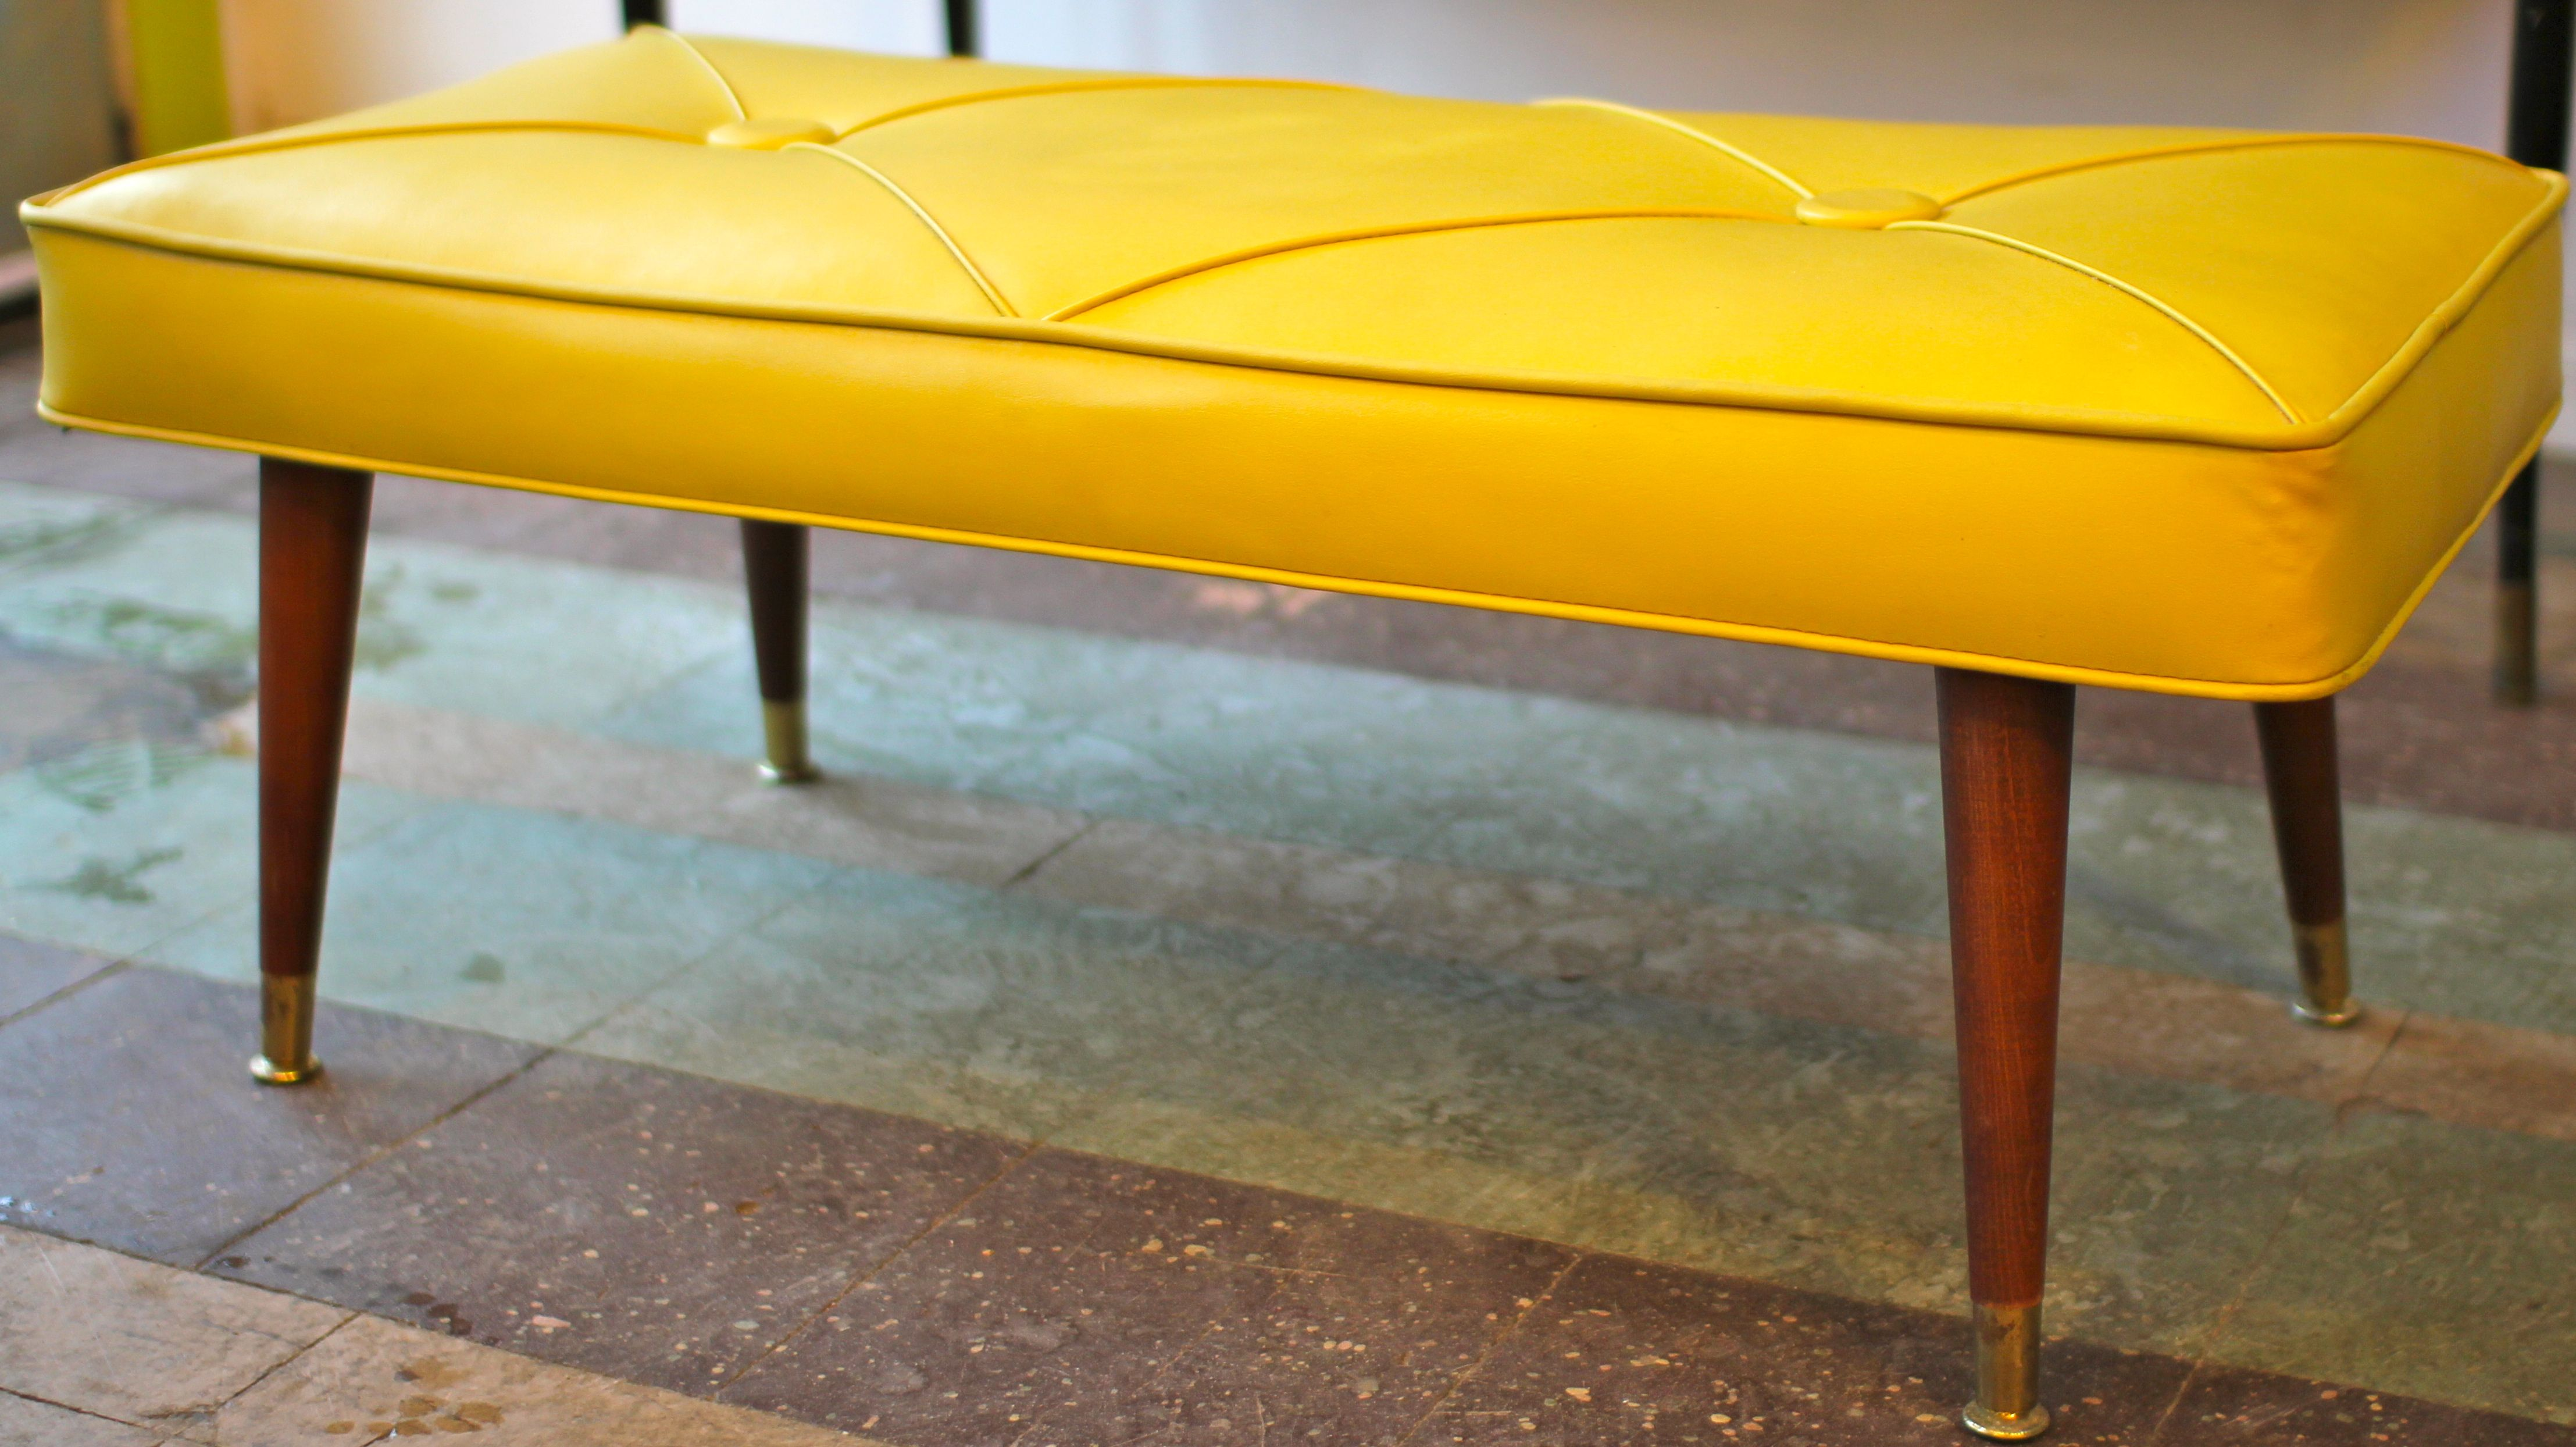 Yellow Tufted Mid Century Modern Bench, Mid Century Modern Furniture Houston, MId-Century Modern Houston, Modernism, Mod, MCM, Hollywood Regency, Yellow Vinyl, Wooden Legs, Dowel Legs, Atomic Legs